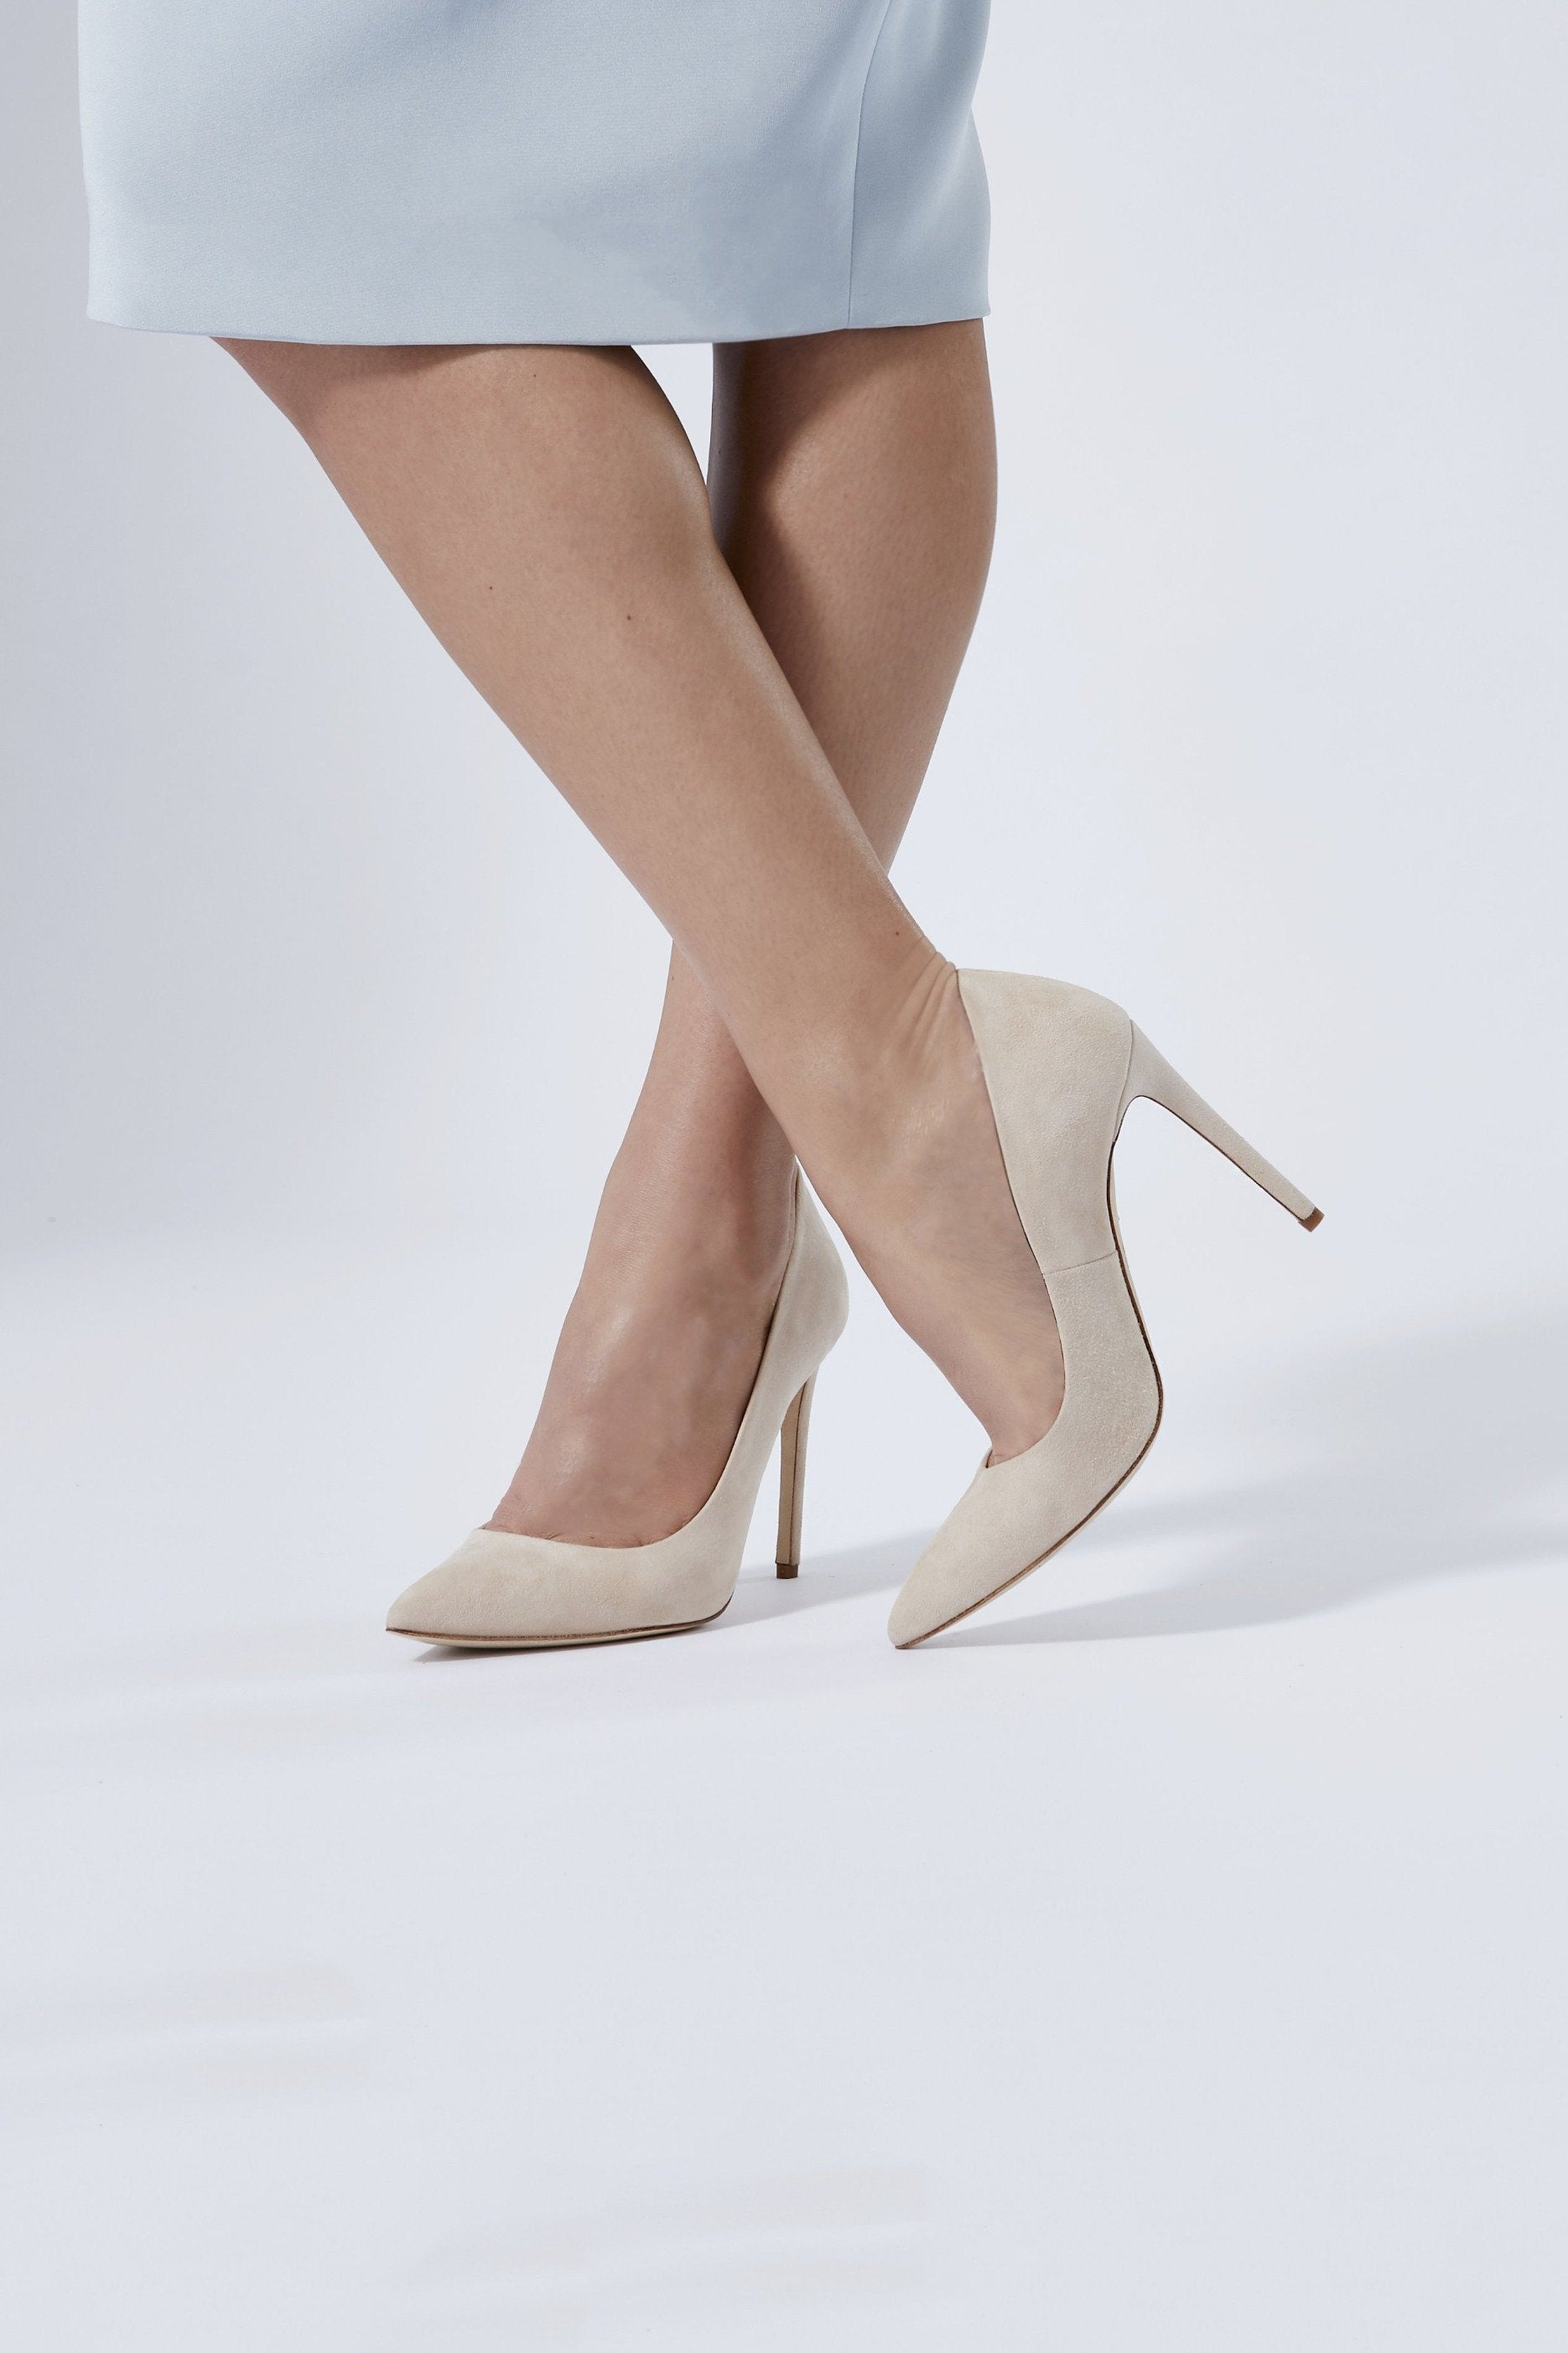 d9d23ce13 ... Rebecca Blush Pointed Stiletto Court Shoe by Emmy London ...